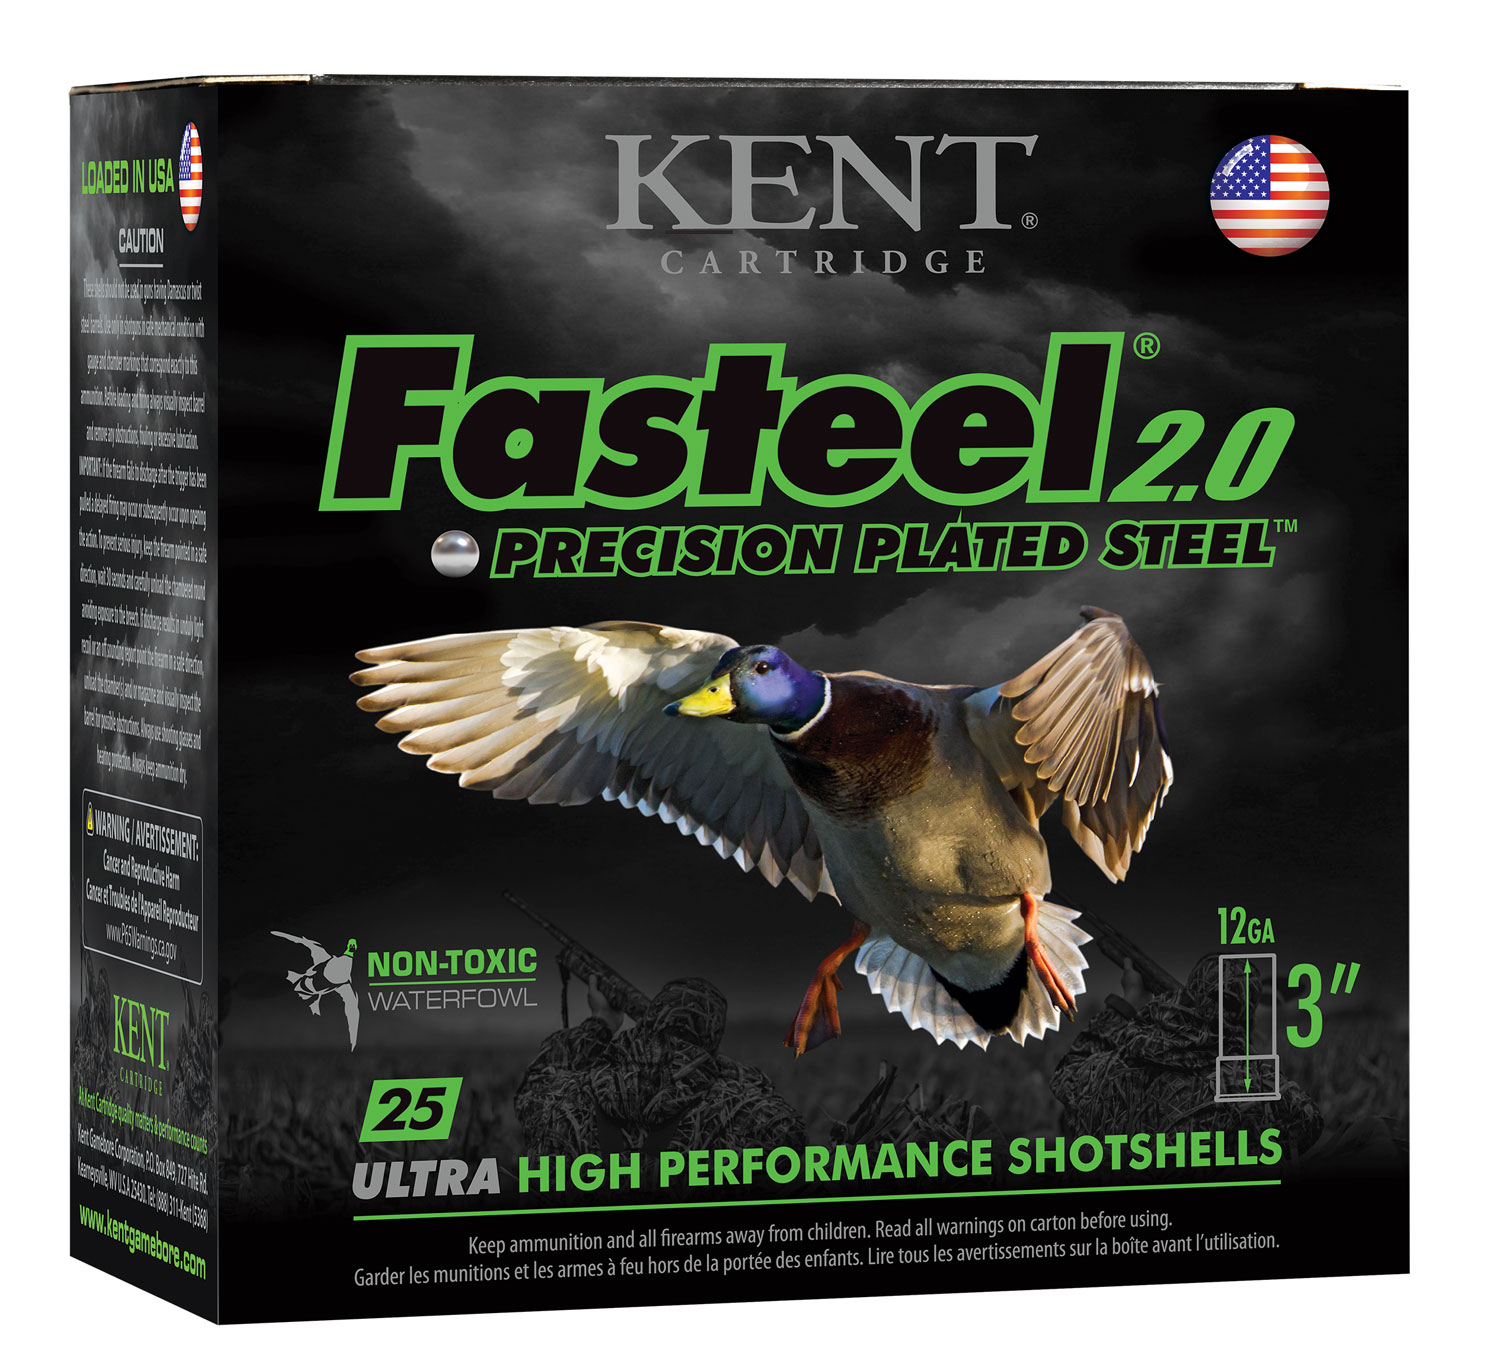 Kent Cartridge K123FS324 Fasteel 2.0  12 Gauge 3